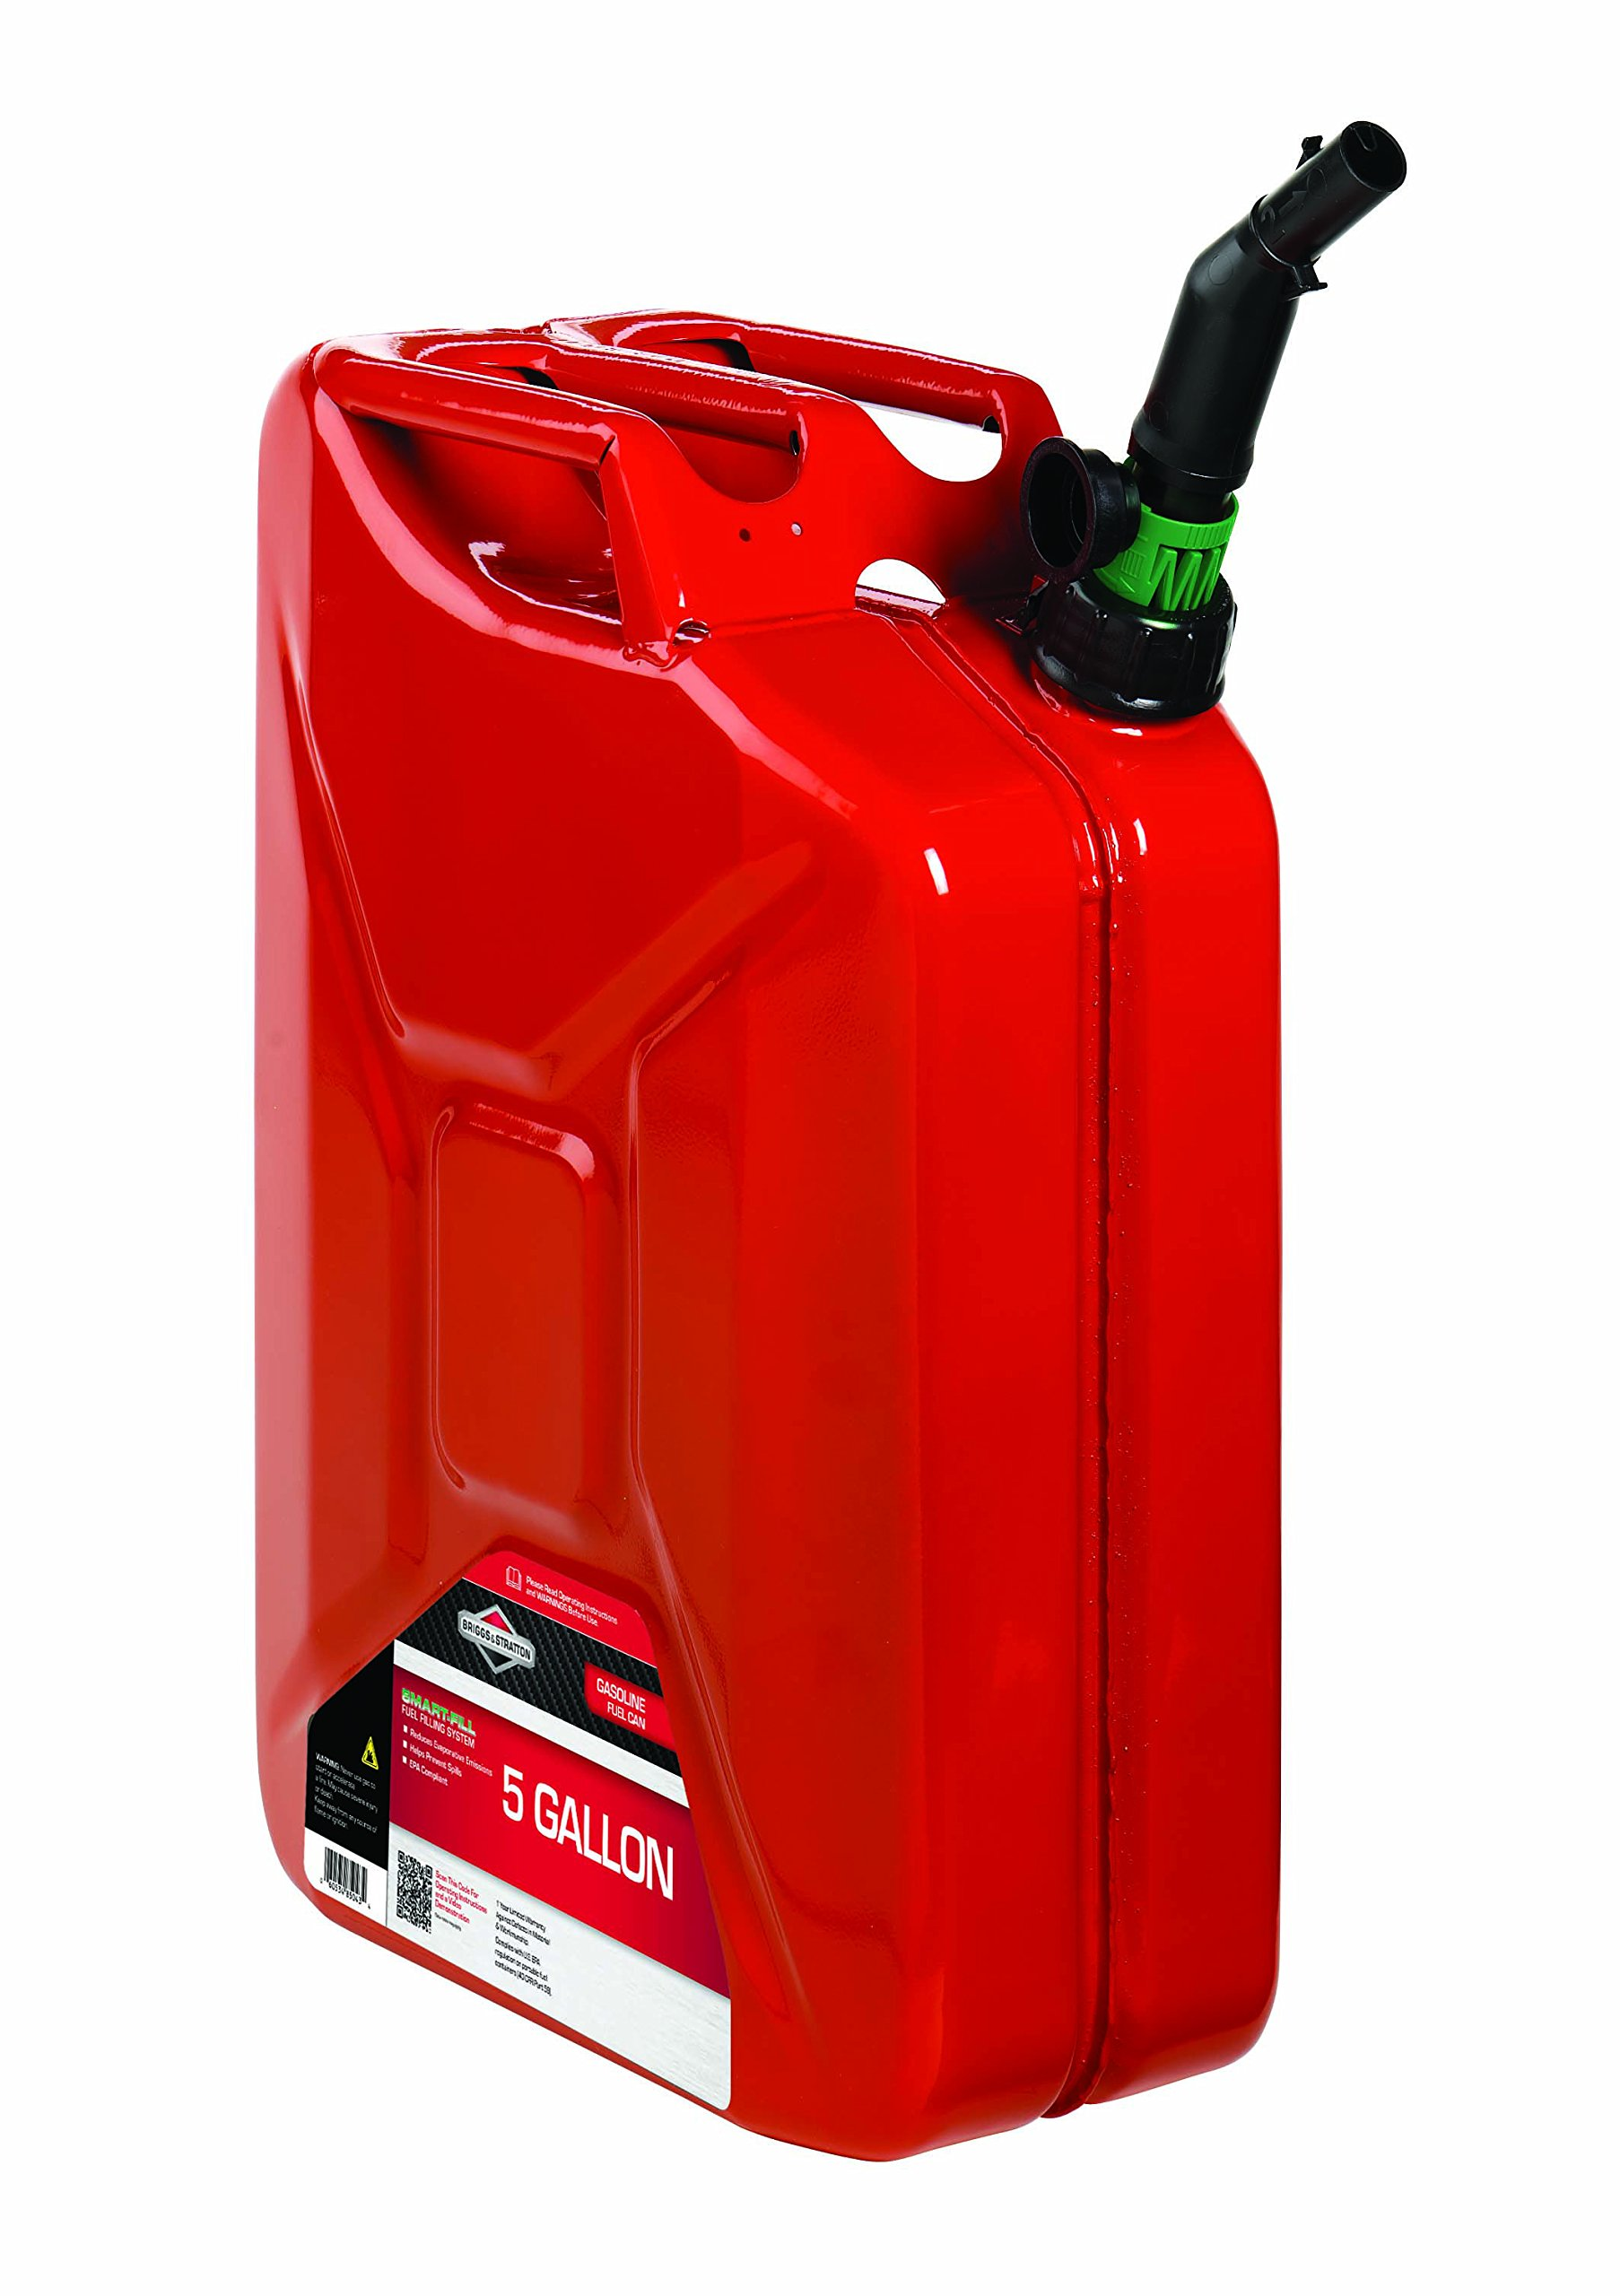 Briggs & Stratton 85043 5 Gallon Spill Proof Metal Gas Can